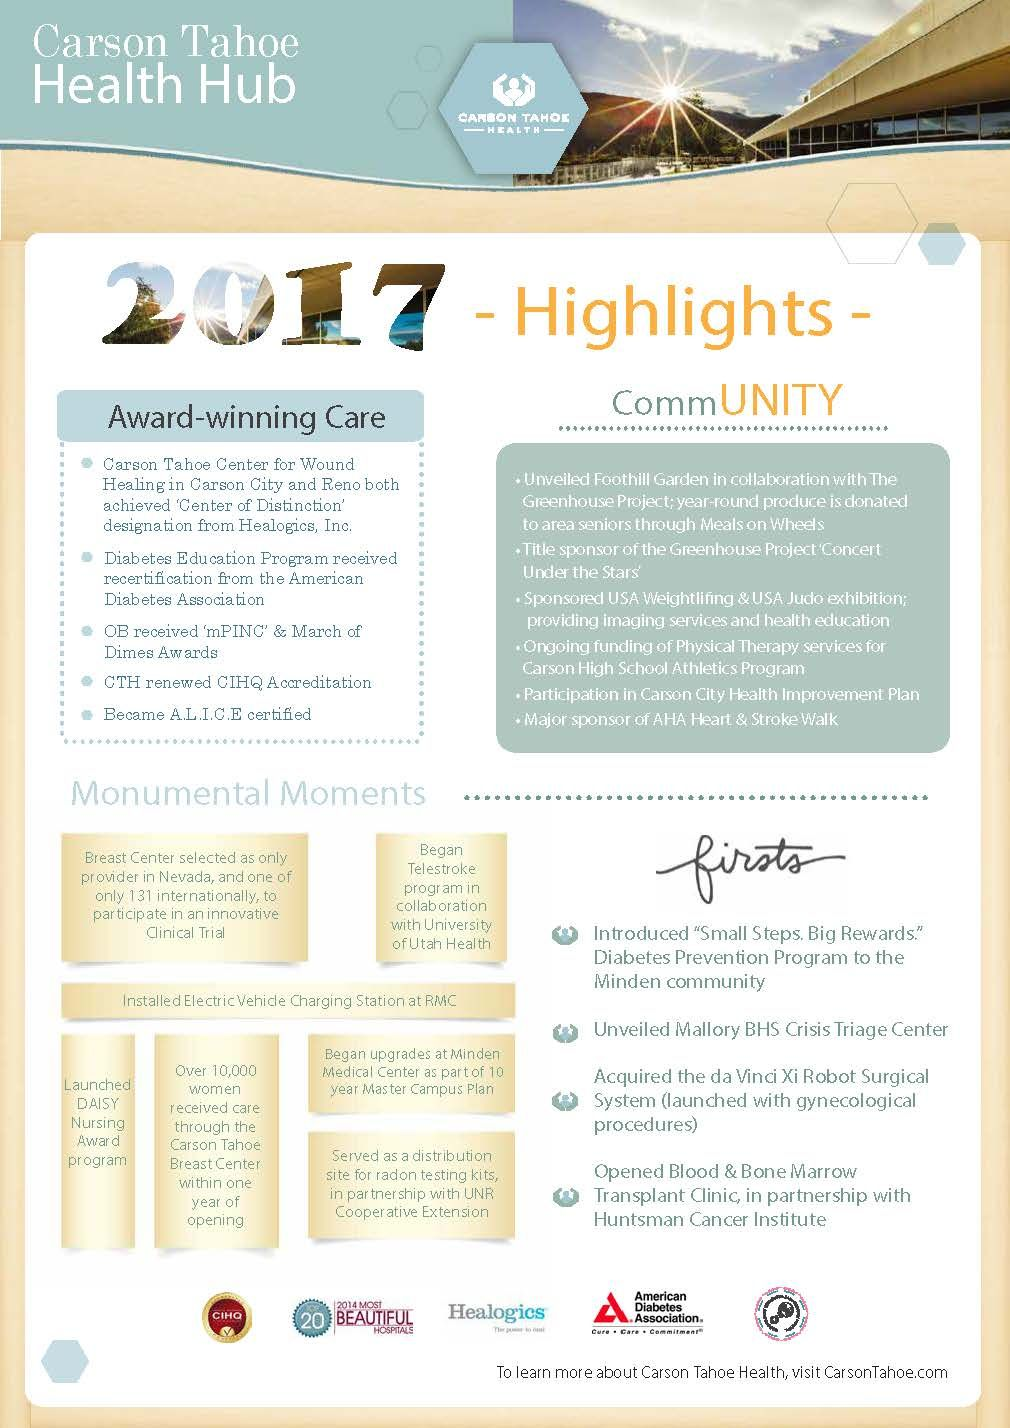 Carson tahoe health in 2017 was alive with highlights and